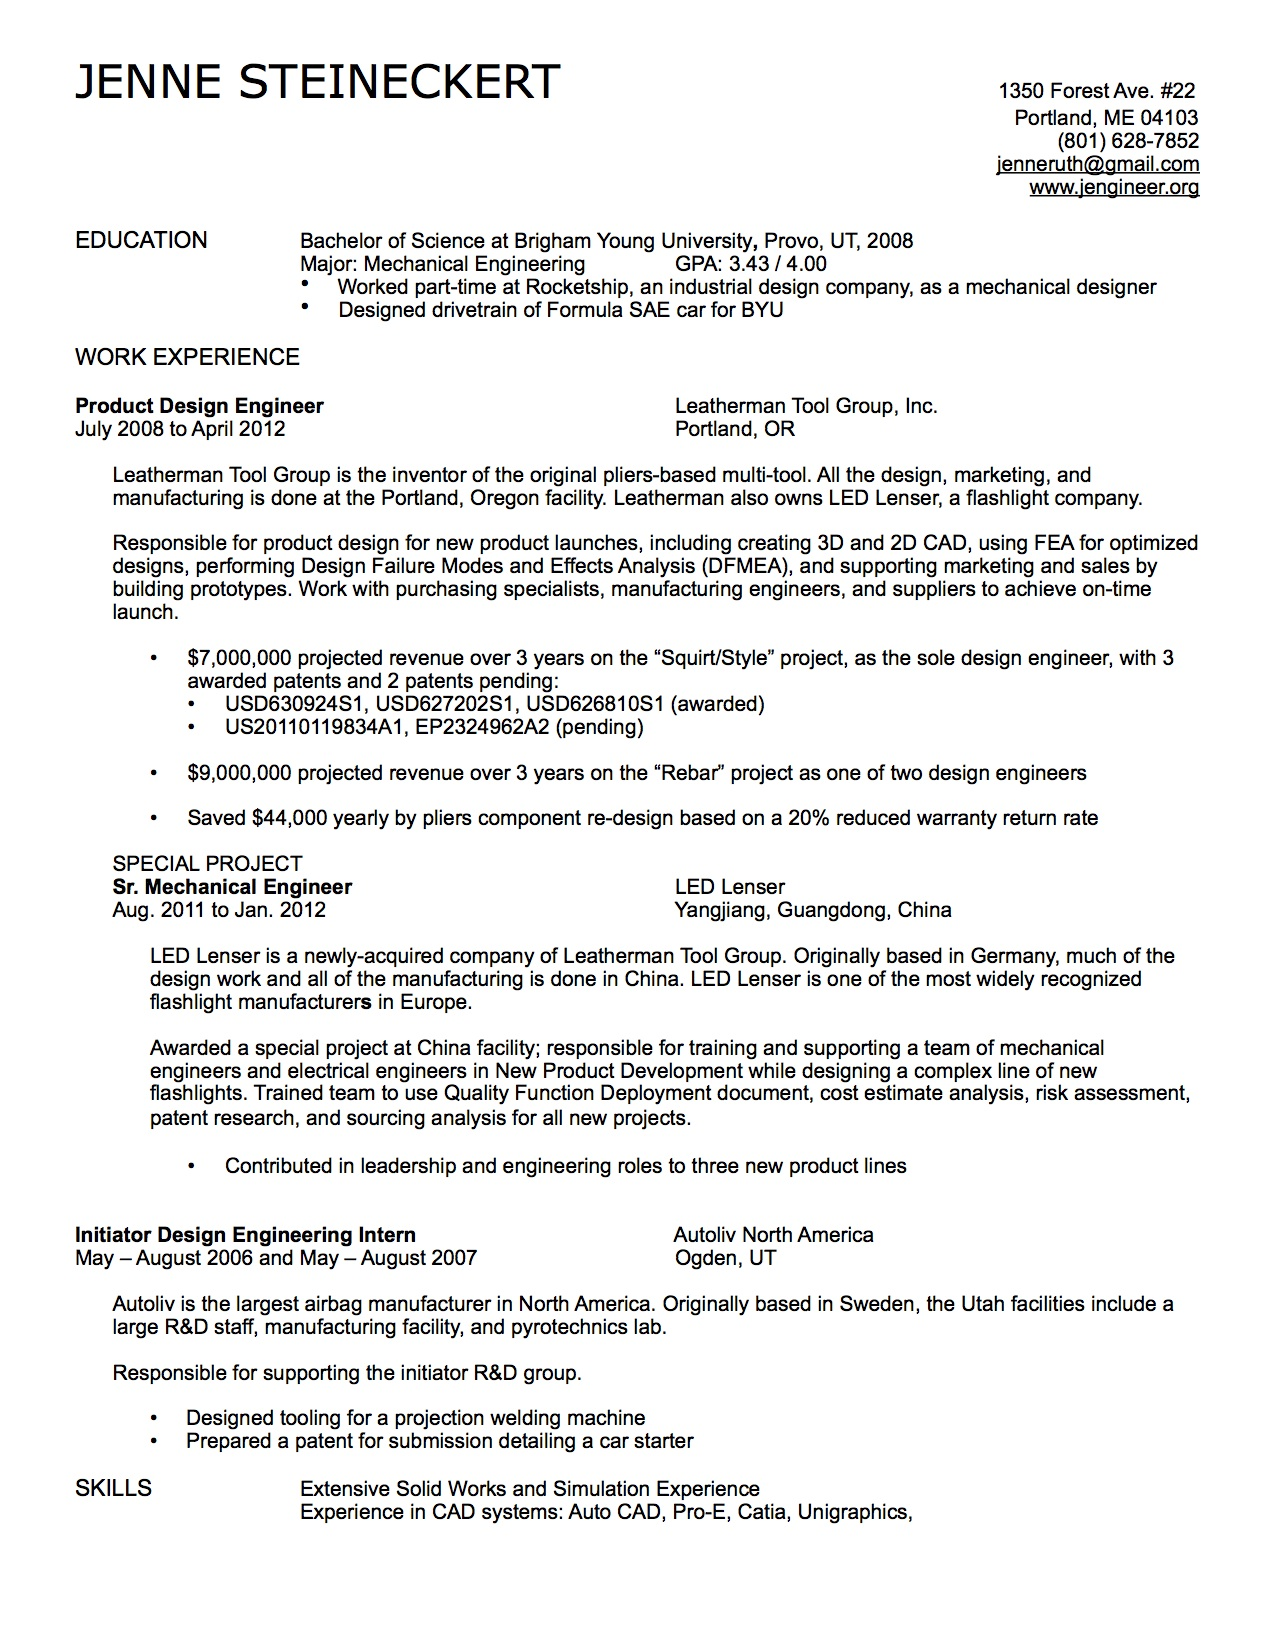 example resume interests online resume format example resume interests resume interests examples resume hobbies and interests good hobbies for resumes spearow the